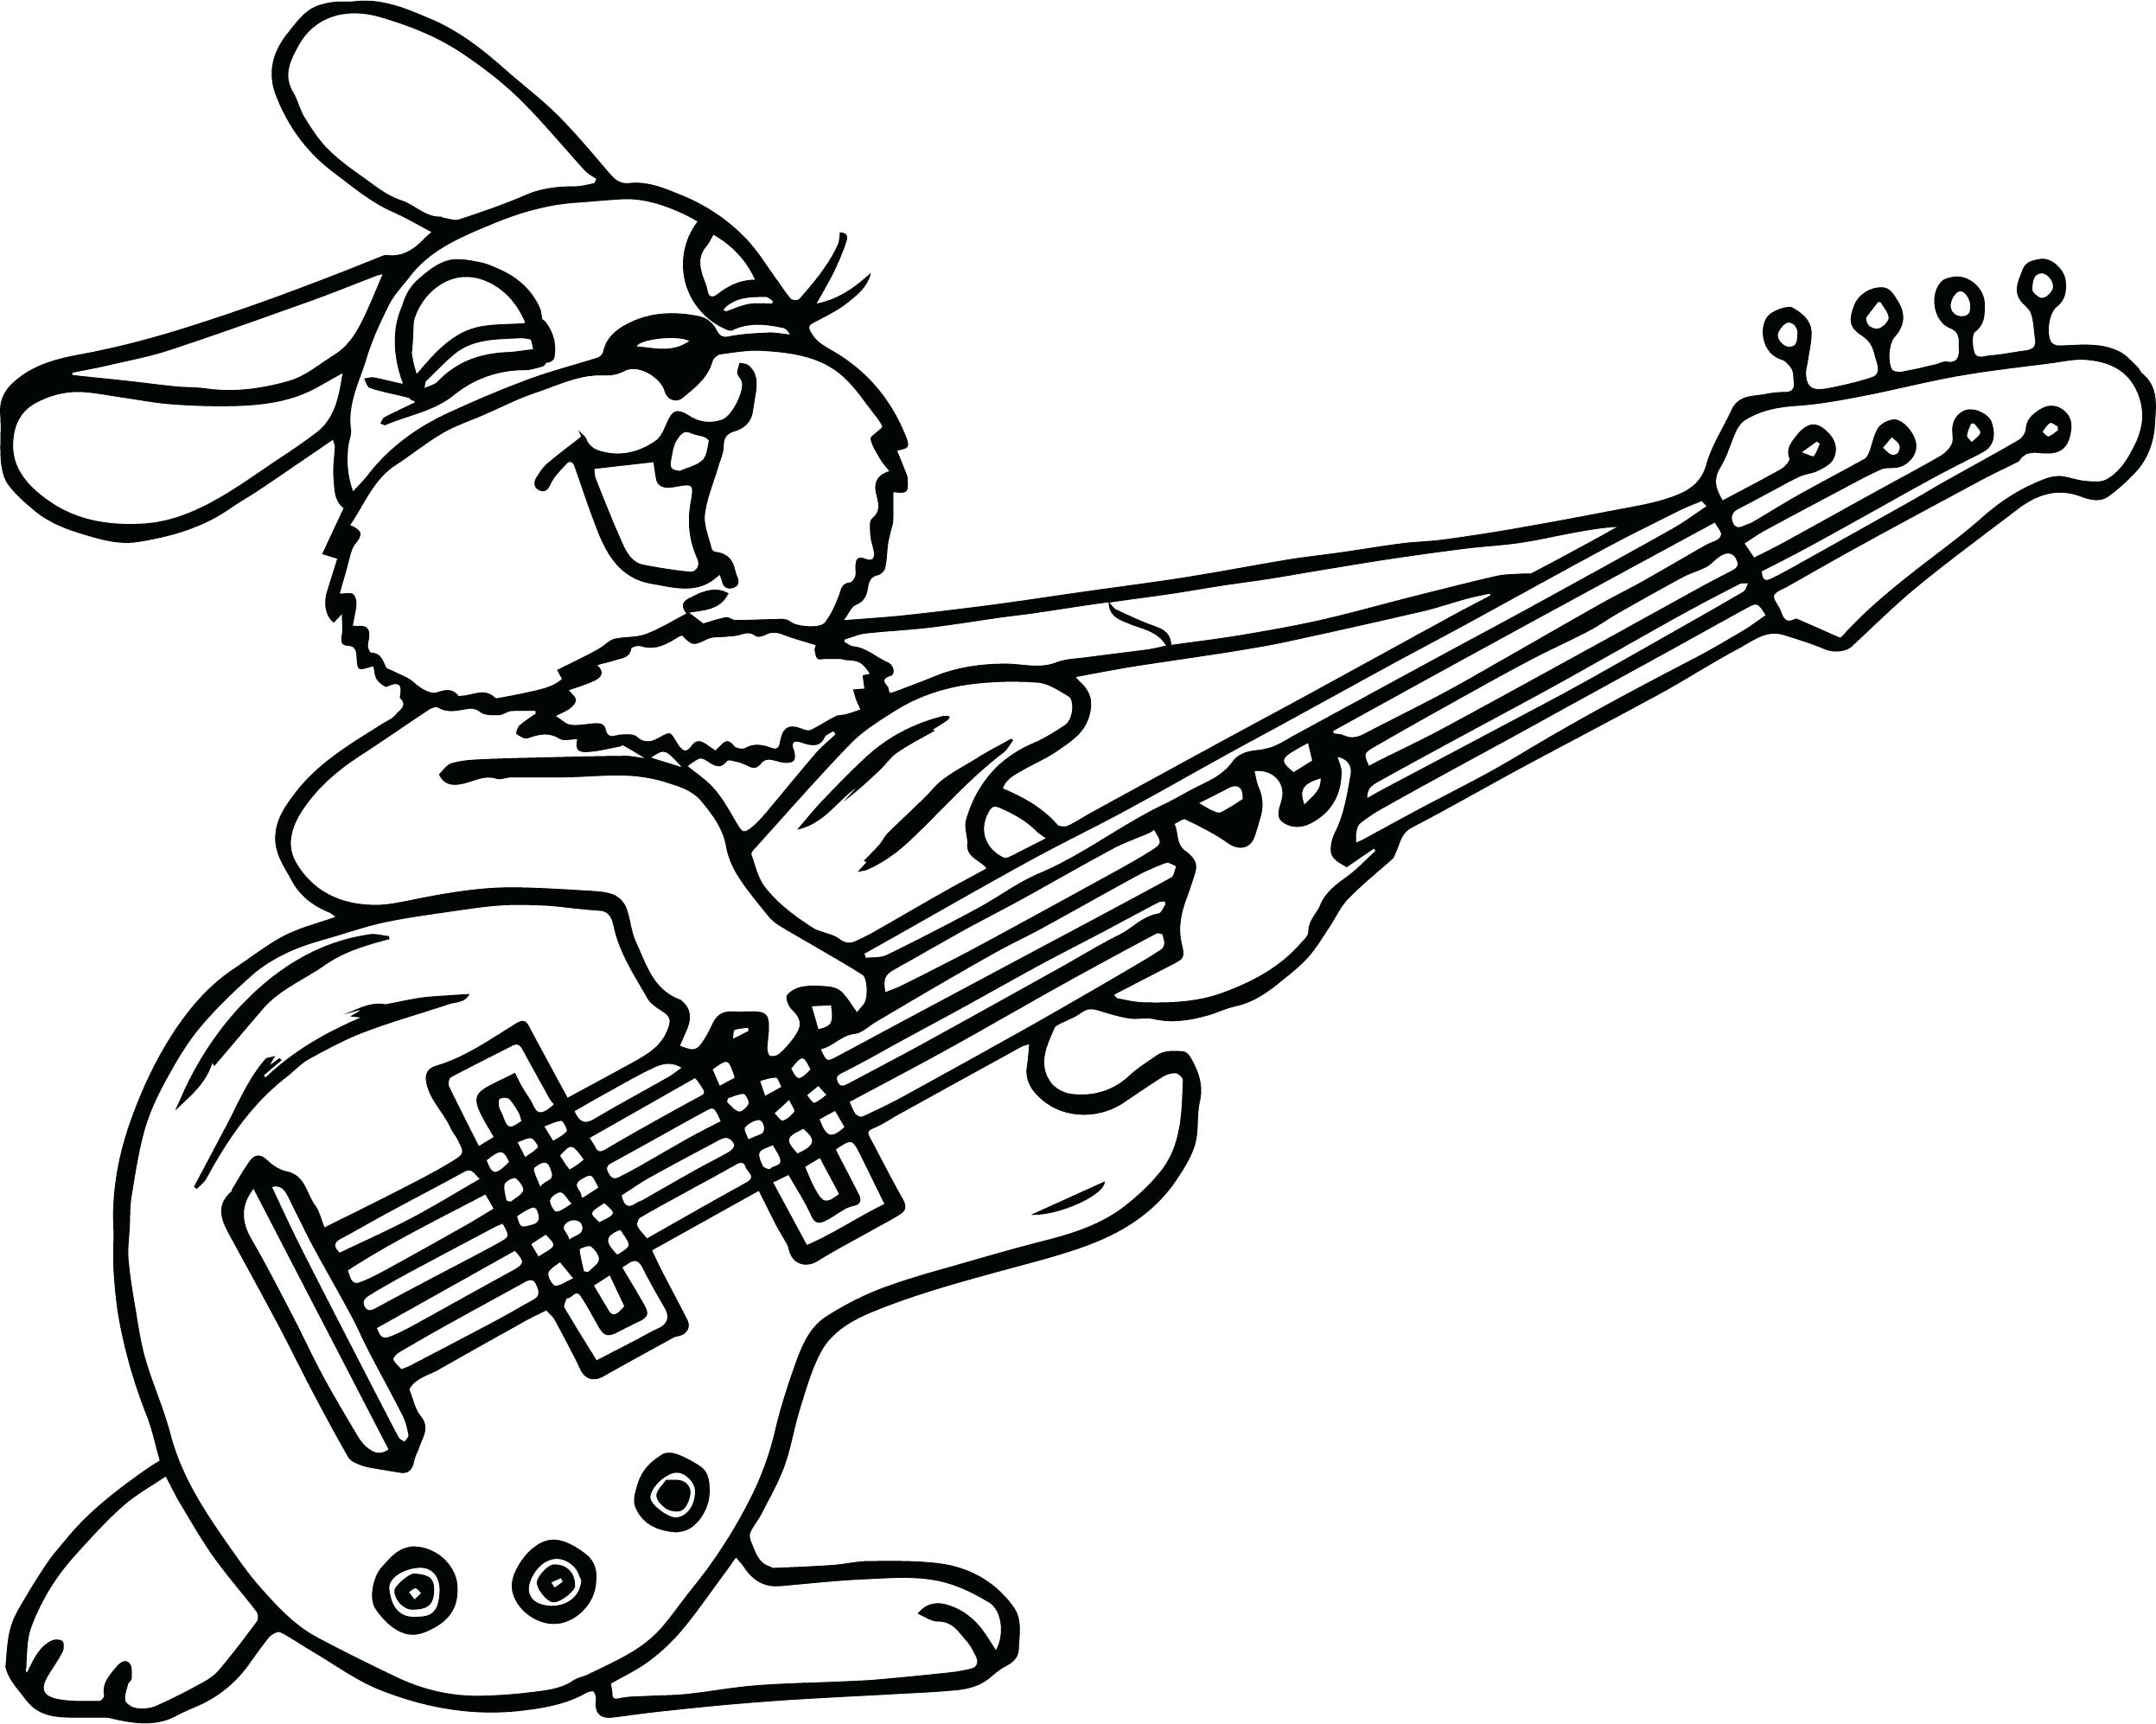 Bass Guitar Drawing At GetDrawings